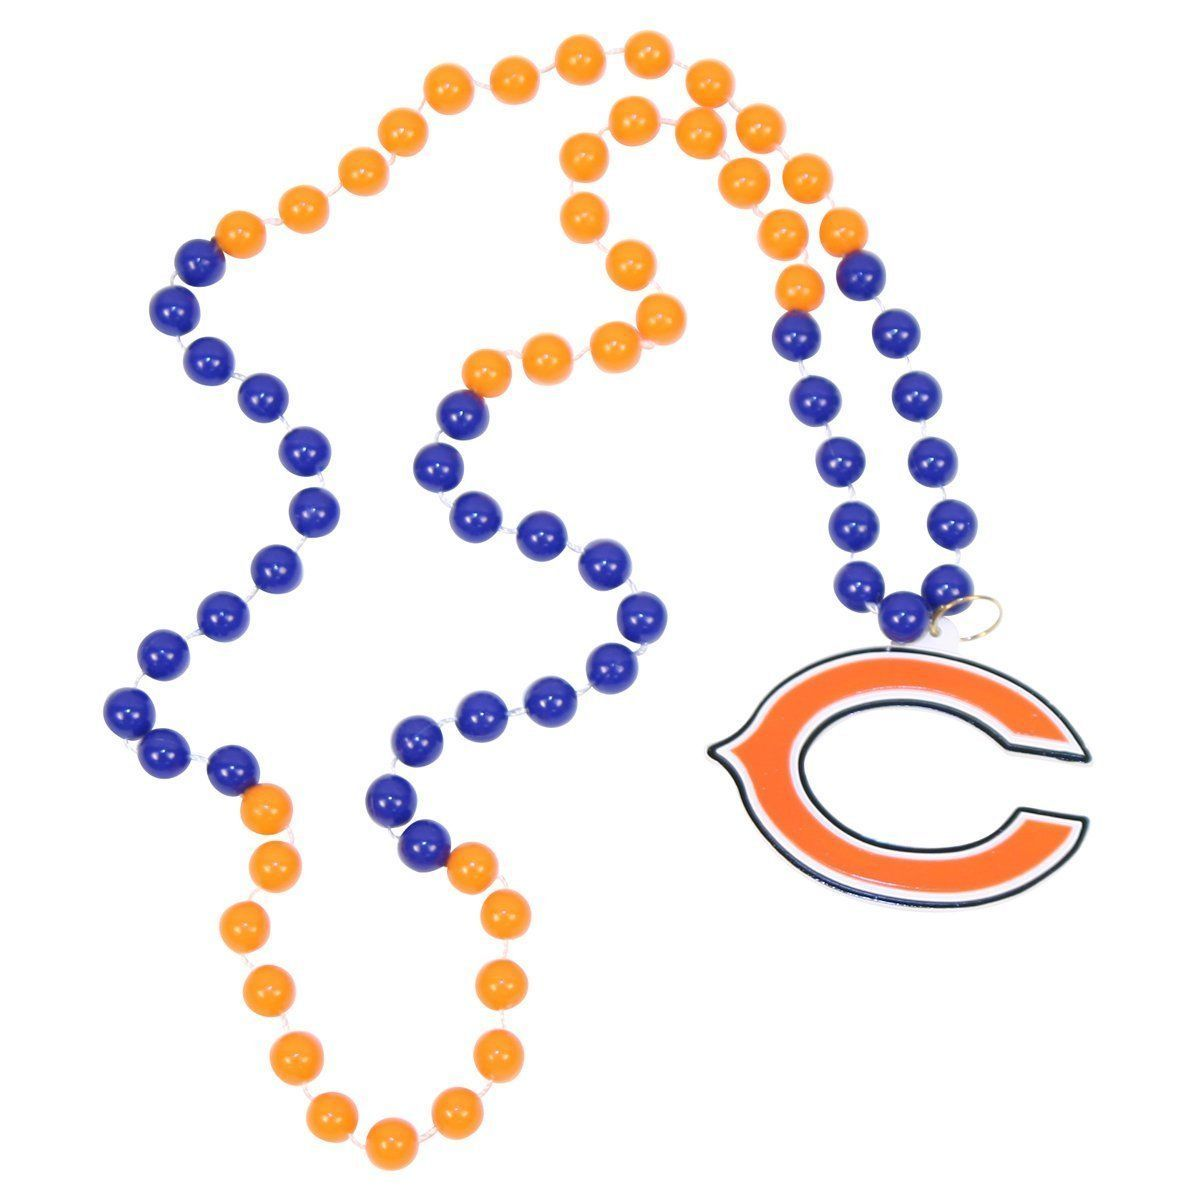 CHICAGO BEARS MARDI GRAS BEADS with MEDALLION NECKLACE NFL FOOTBALL